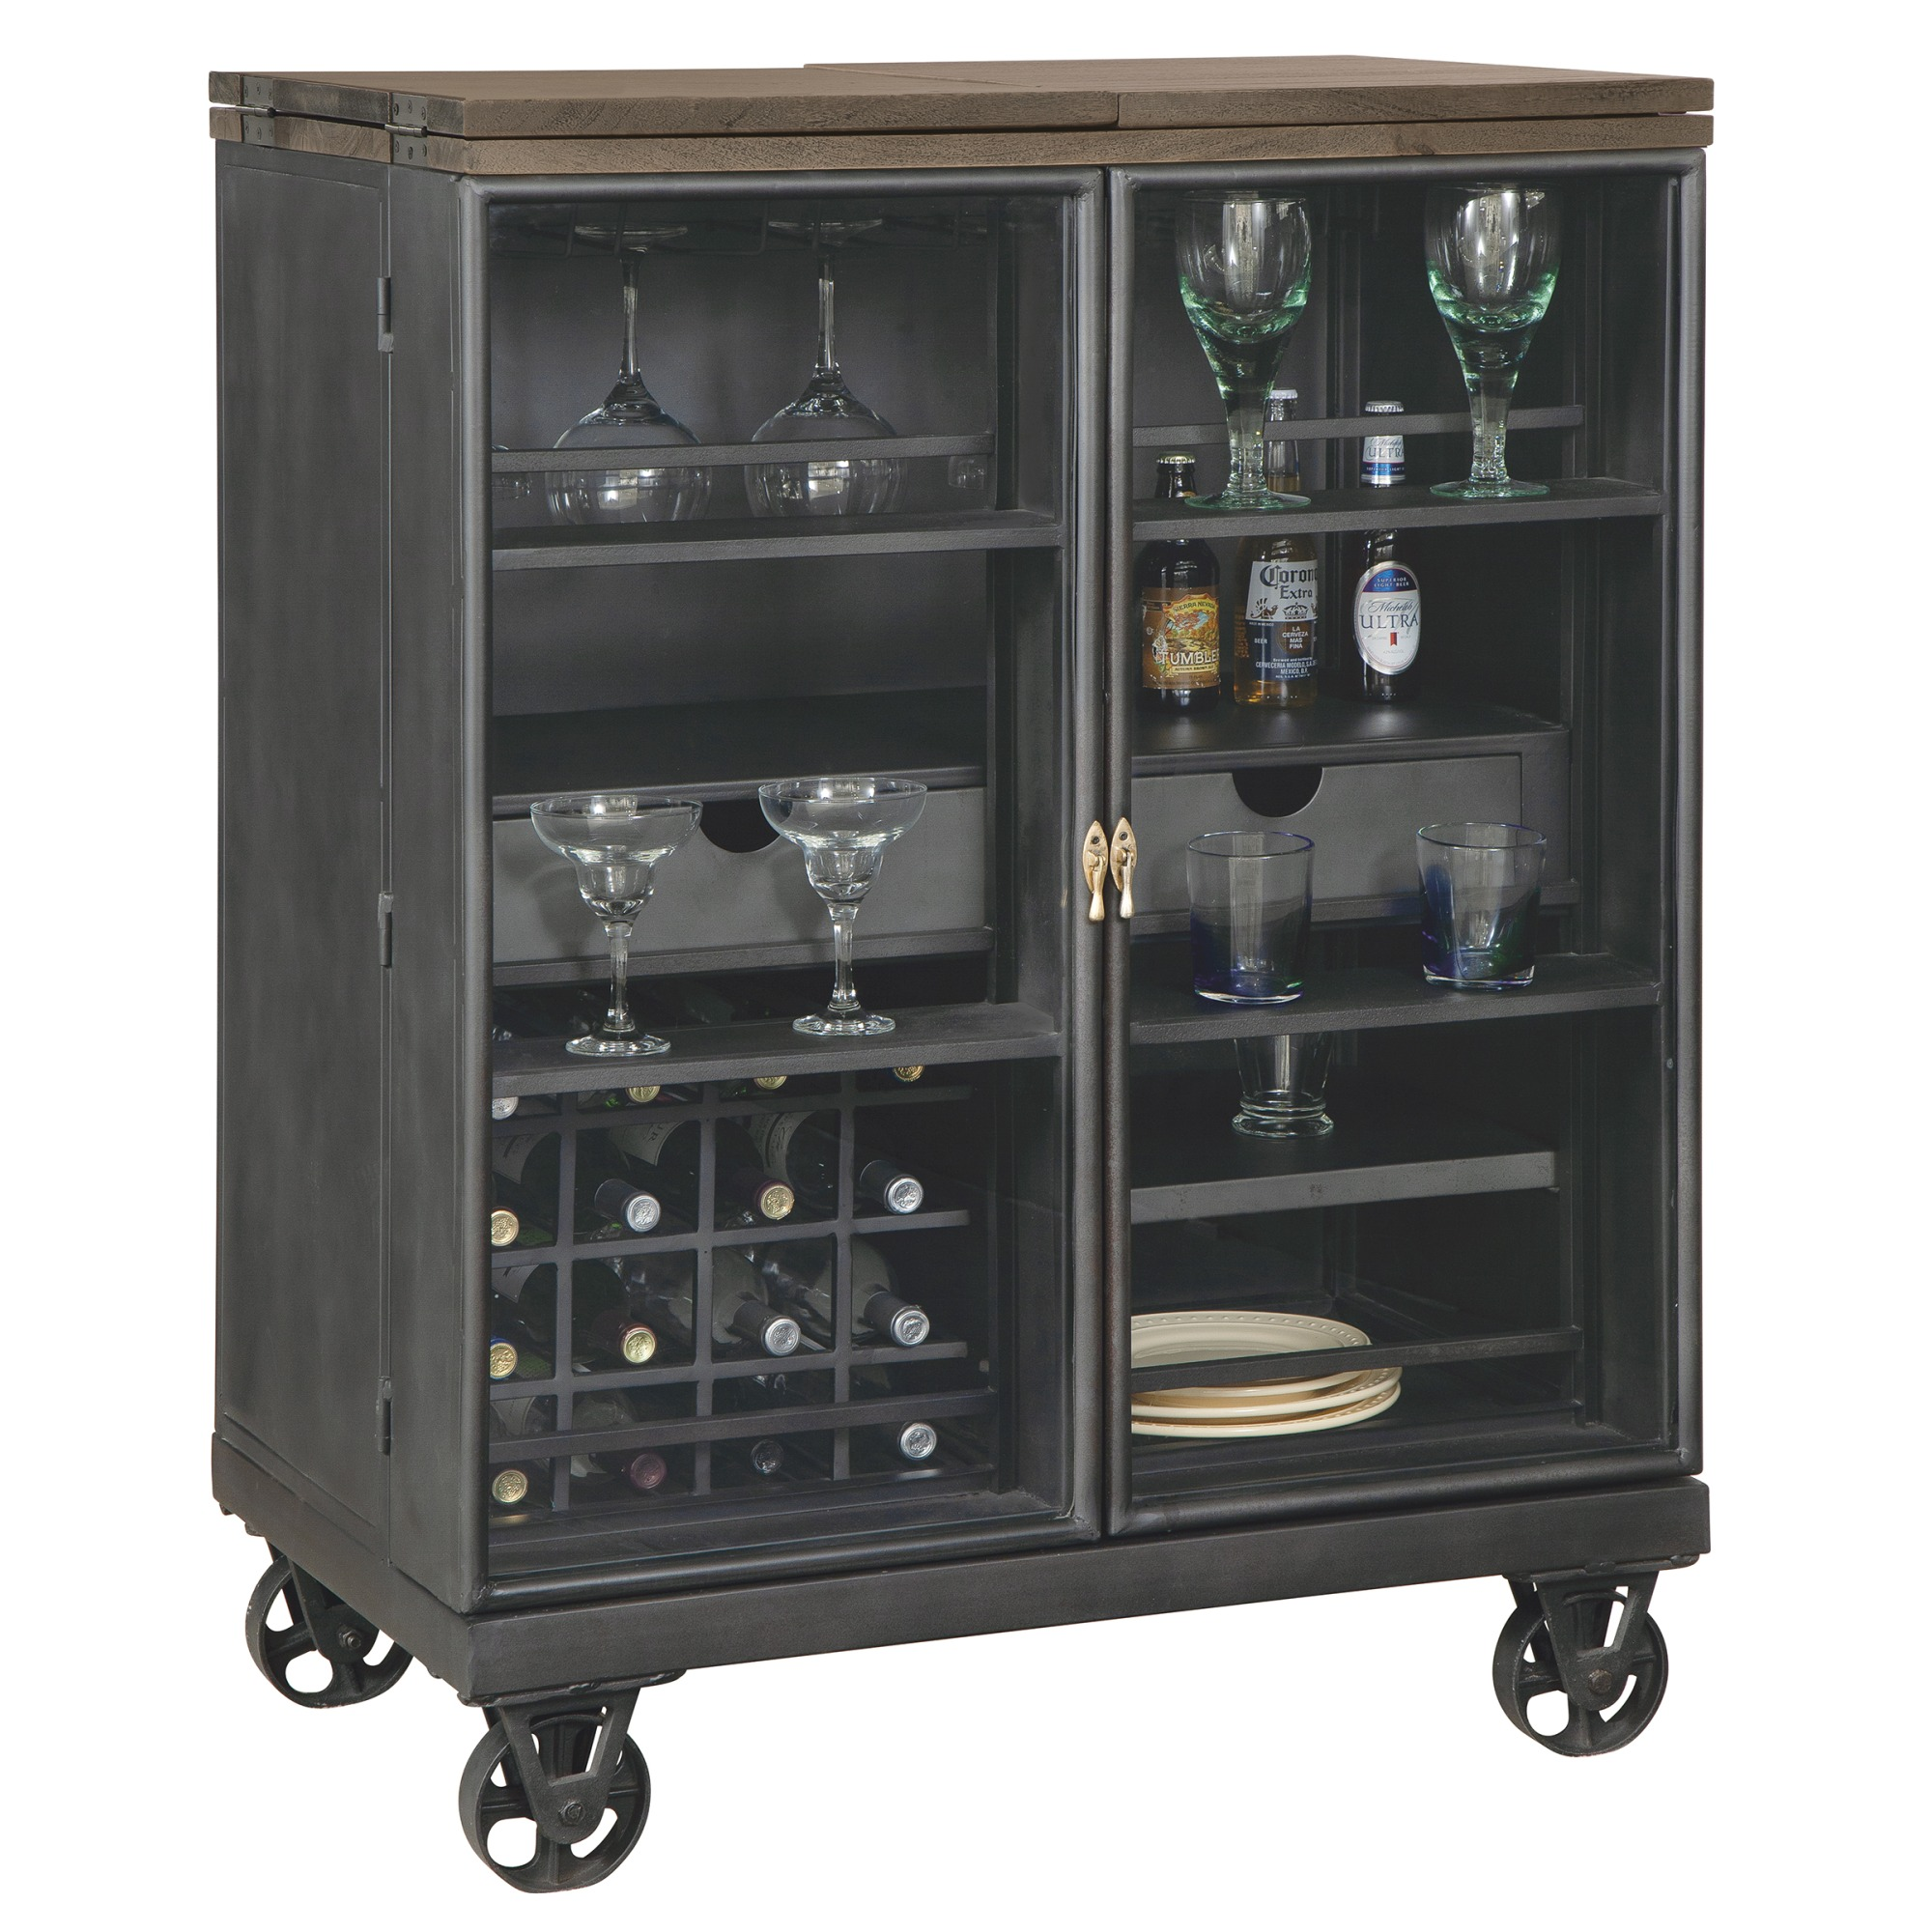 Image for 695-216 Al Fresco Wine & Bar Console from Howard Miller Official Website